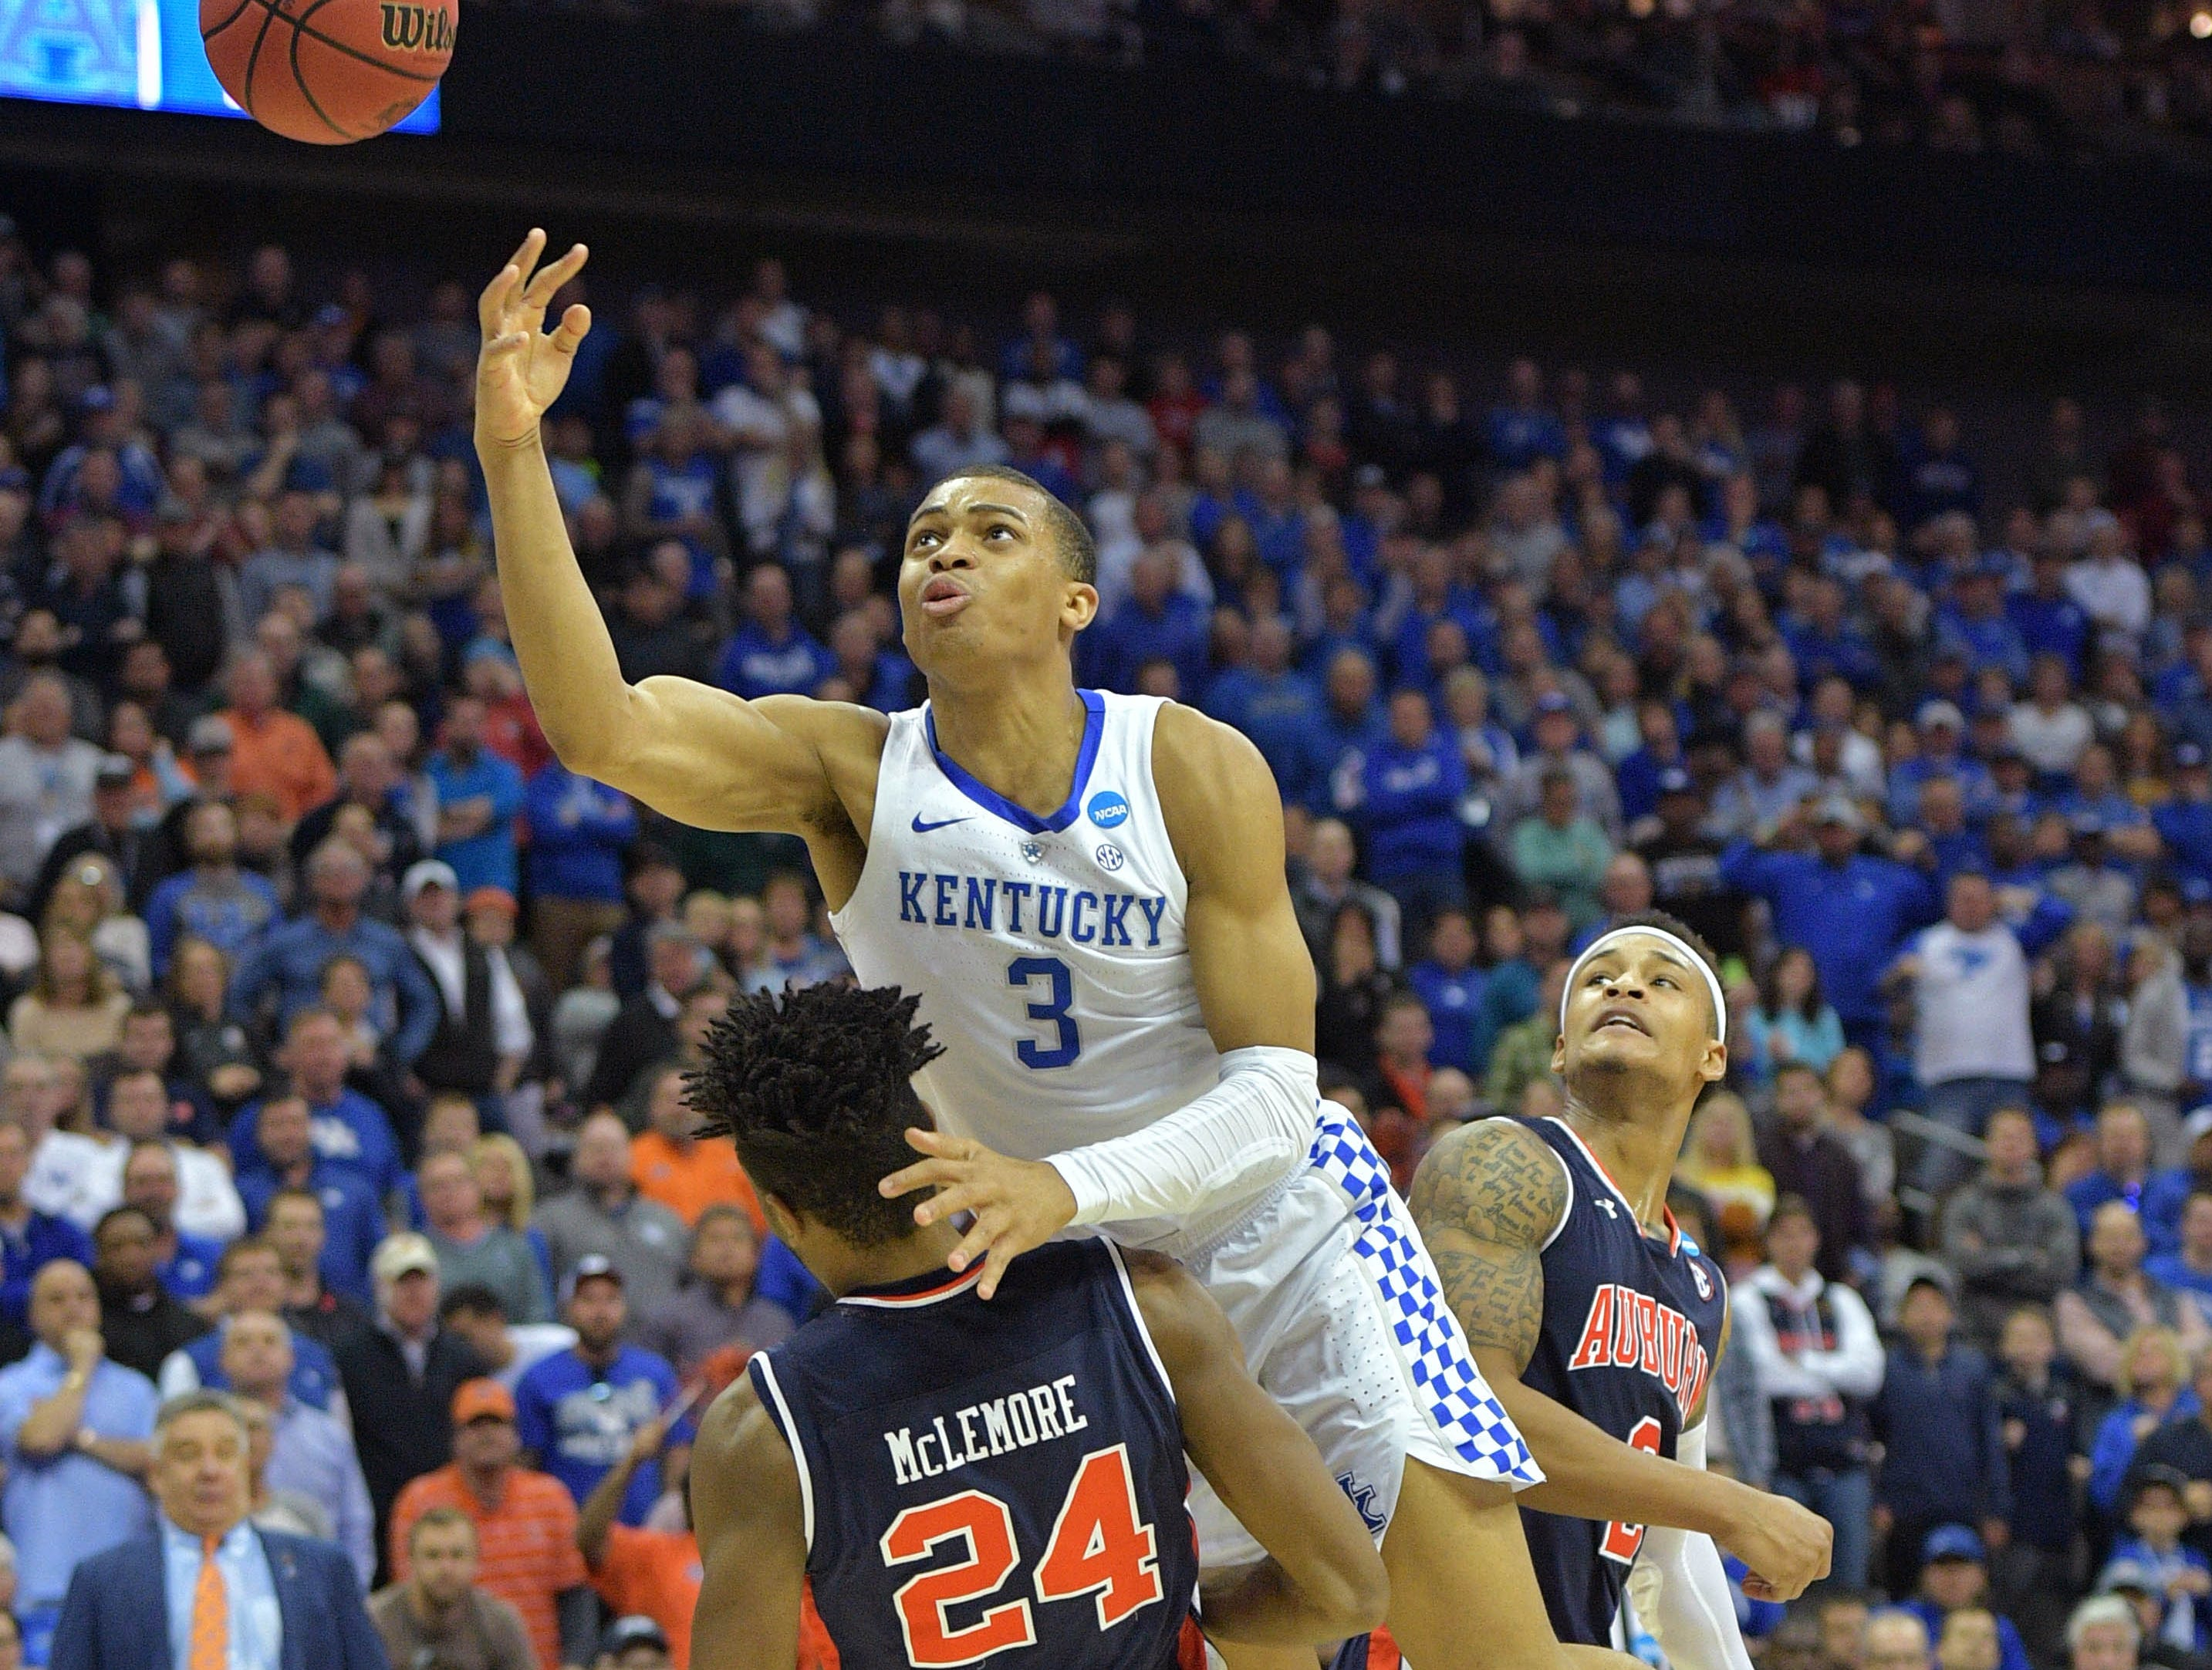 Mar 31, 2019; Kansas City, MO, United States; Kentucky Wildcats guard Keldon Johnson (3) shoots between Auburn Tigers guard Bryce Brown (2) and forward Anfernee McLemore (24) during the first half in the championship game of the midwest regional of the 2019 NCAA Tournament at Sprint Center. Mandatory Credit: Denny Medley-USA TODAY Sports